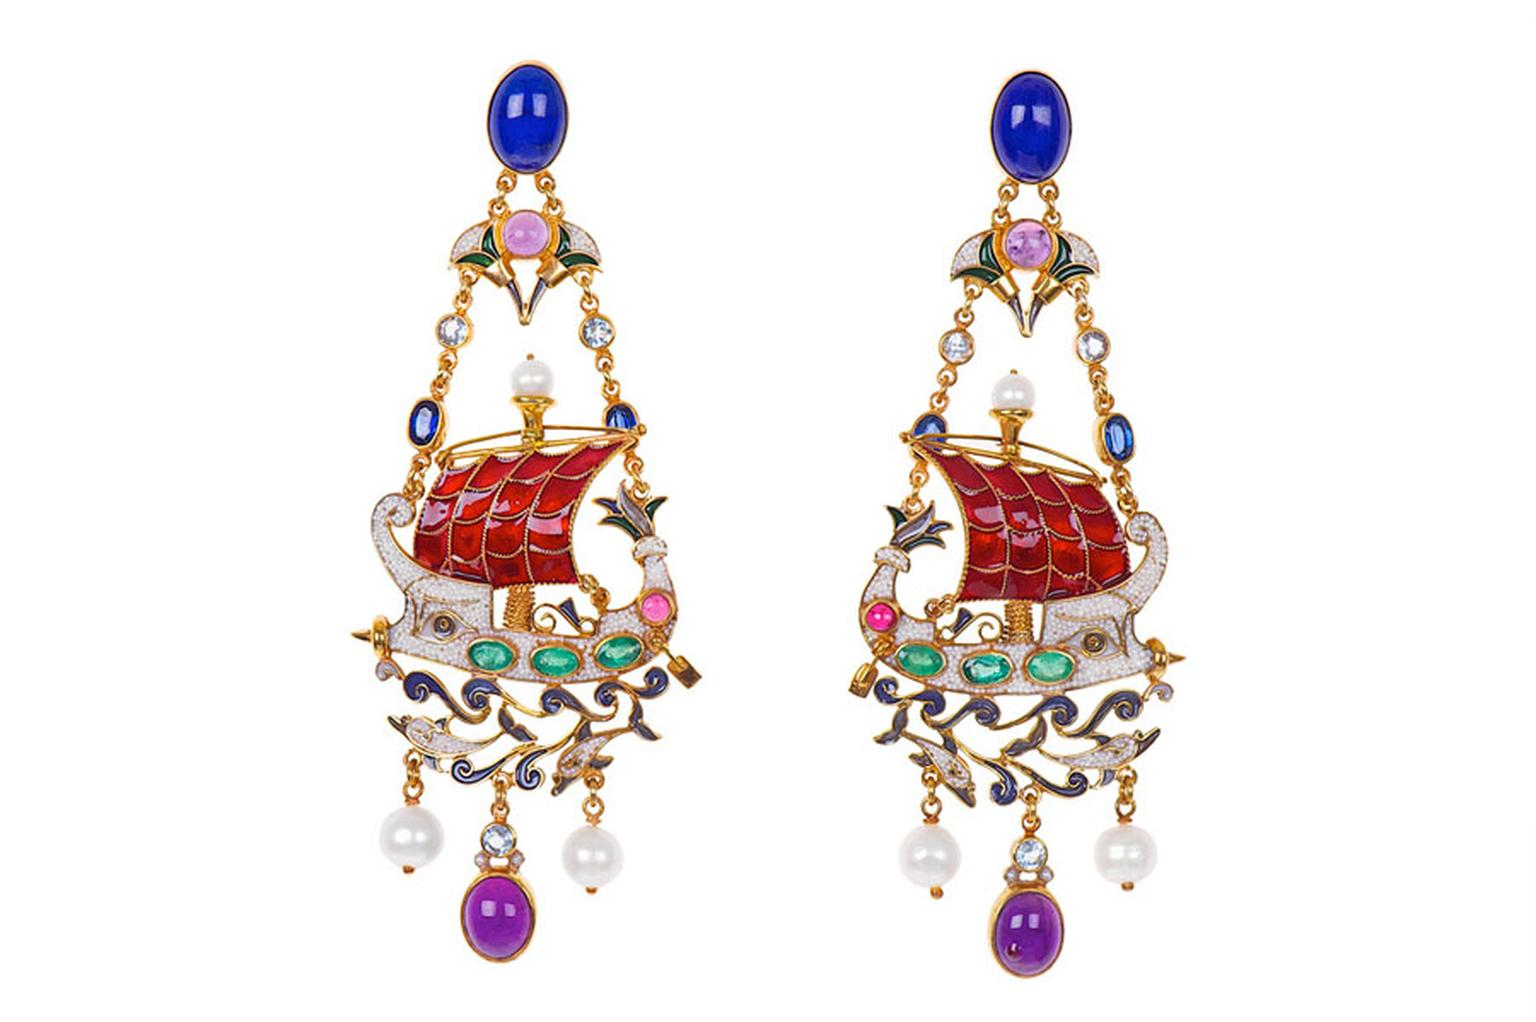 Percossi Papi earrings depicting a Phoenician ship, with a protective Isis eye and dolphins made with lapis lazuli, sapphires, emerald, ruby, amethyst and blue topaz. The hull of the ship is made from natural pearl micromosaic.